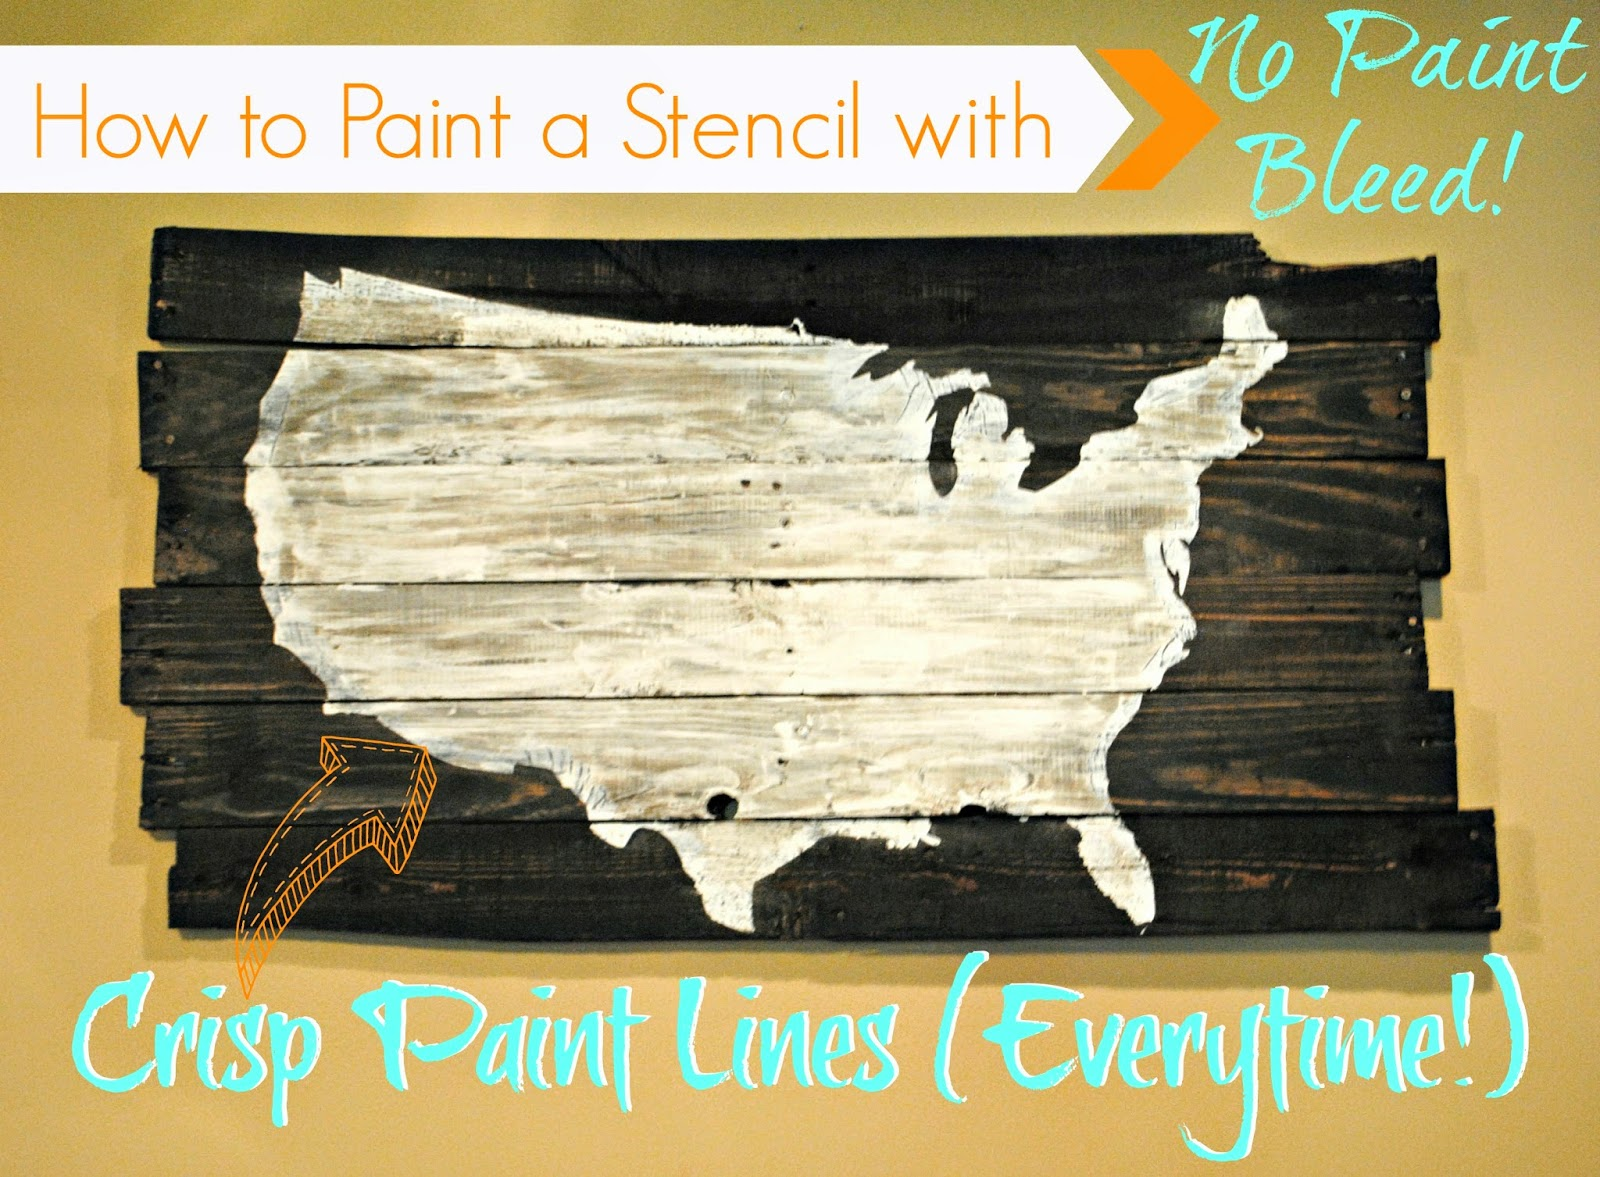 How to paint a stencil without bleeding silhouette school how to paint a stencil without bleeding spiritdancerdesigns Gallery